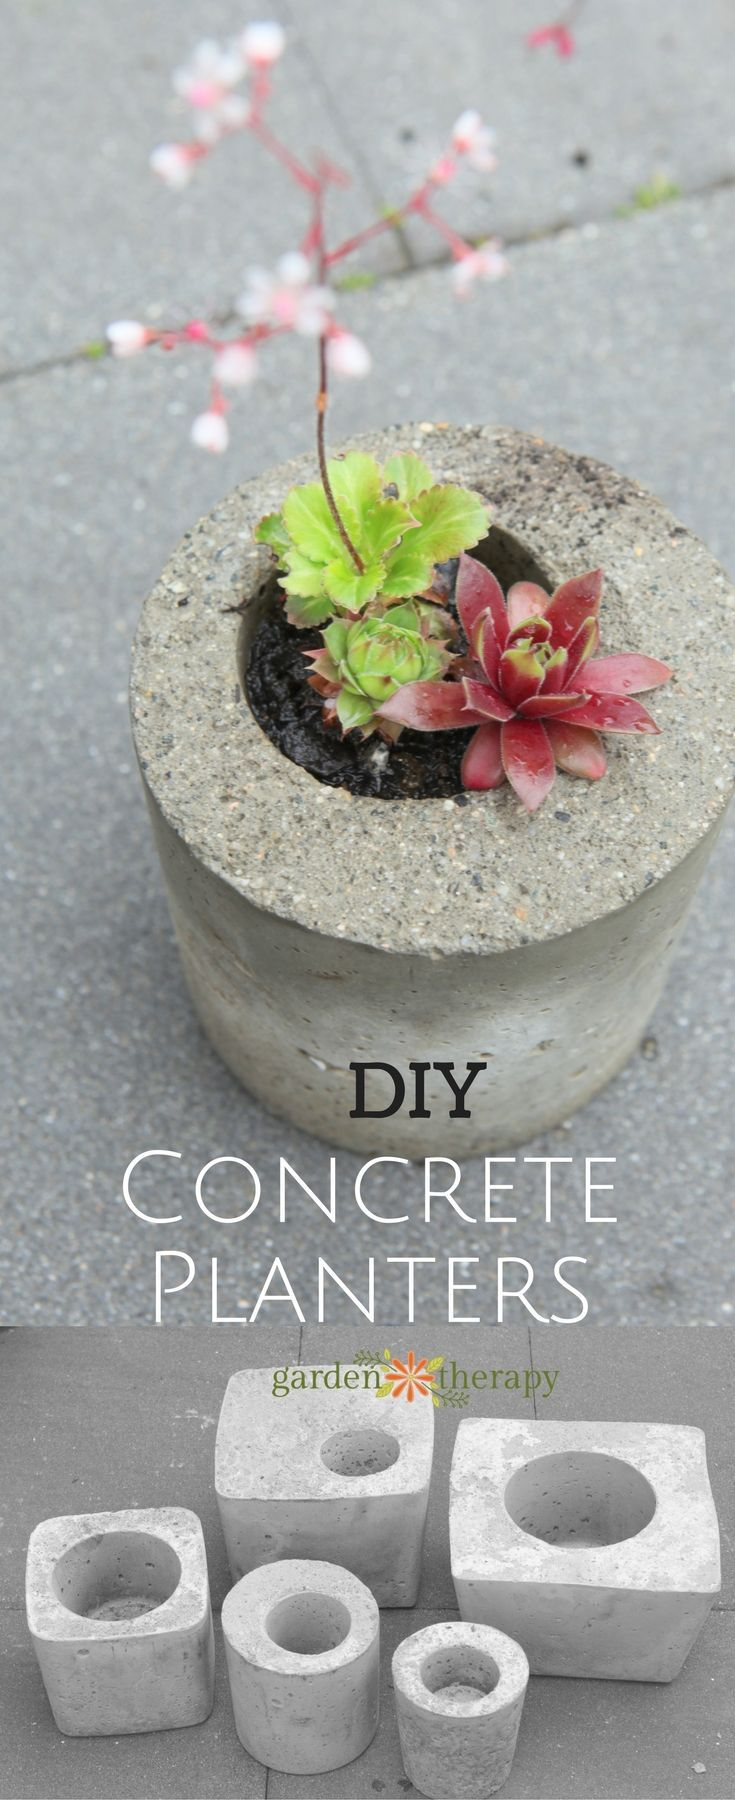 How to make concrete planters! These DIY concrete garden planters are simple to make in just a weekend and with materials you may already have around the house. They look modern with unique shapes that come straight from the recycling bin!